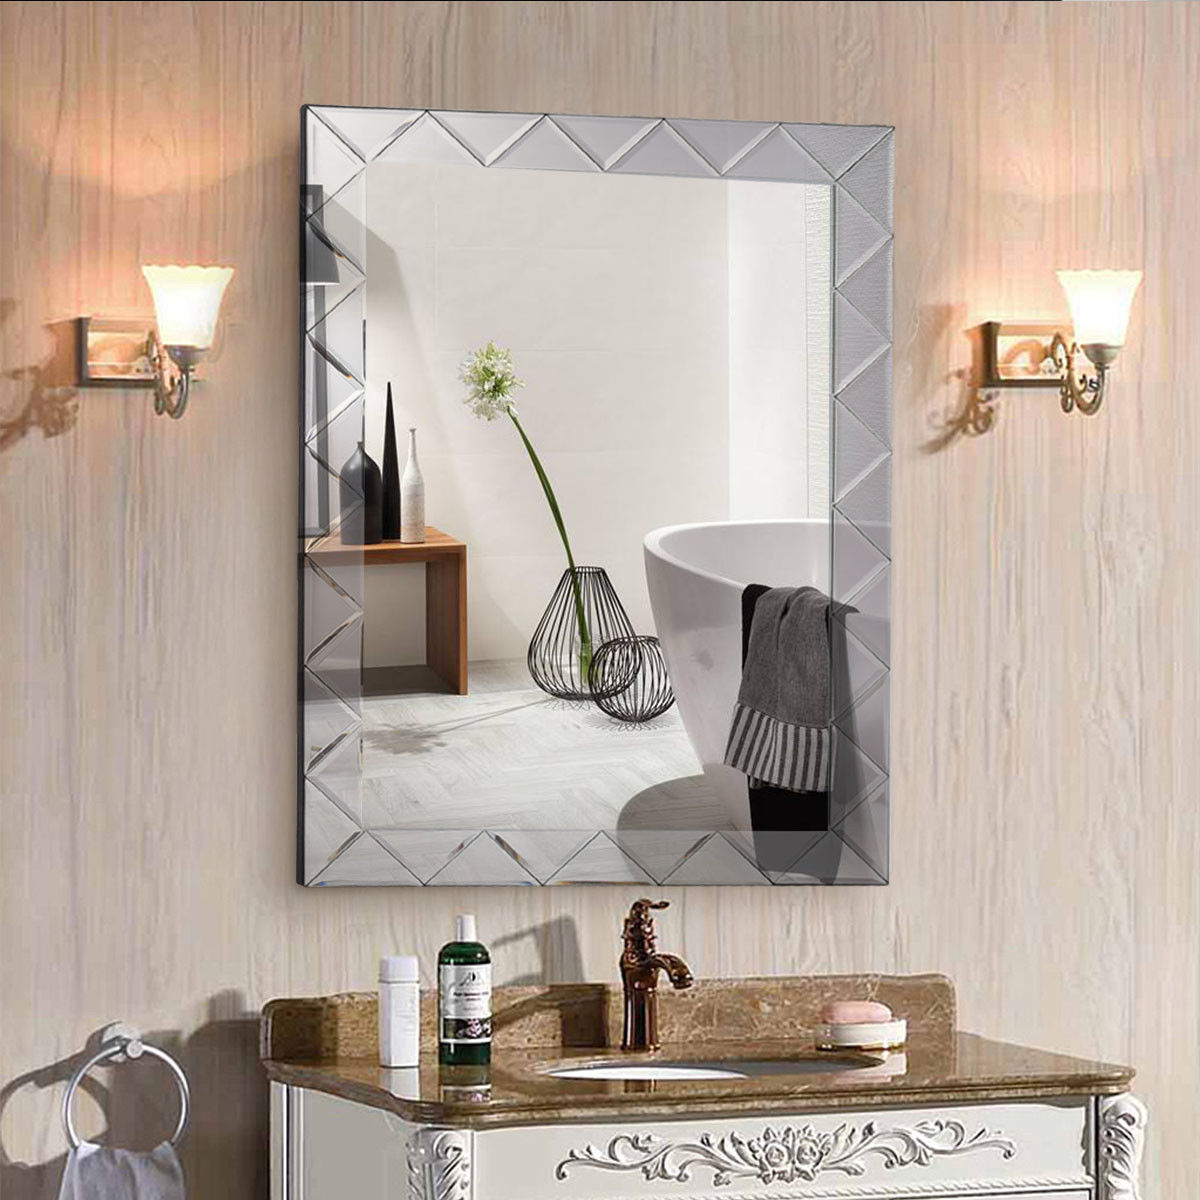 Costway 21.5'' x 30.5'' Rectangle Wall Mirror Frame Angled Beveled Glass Panel Bathroom